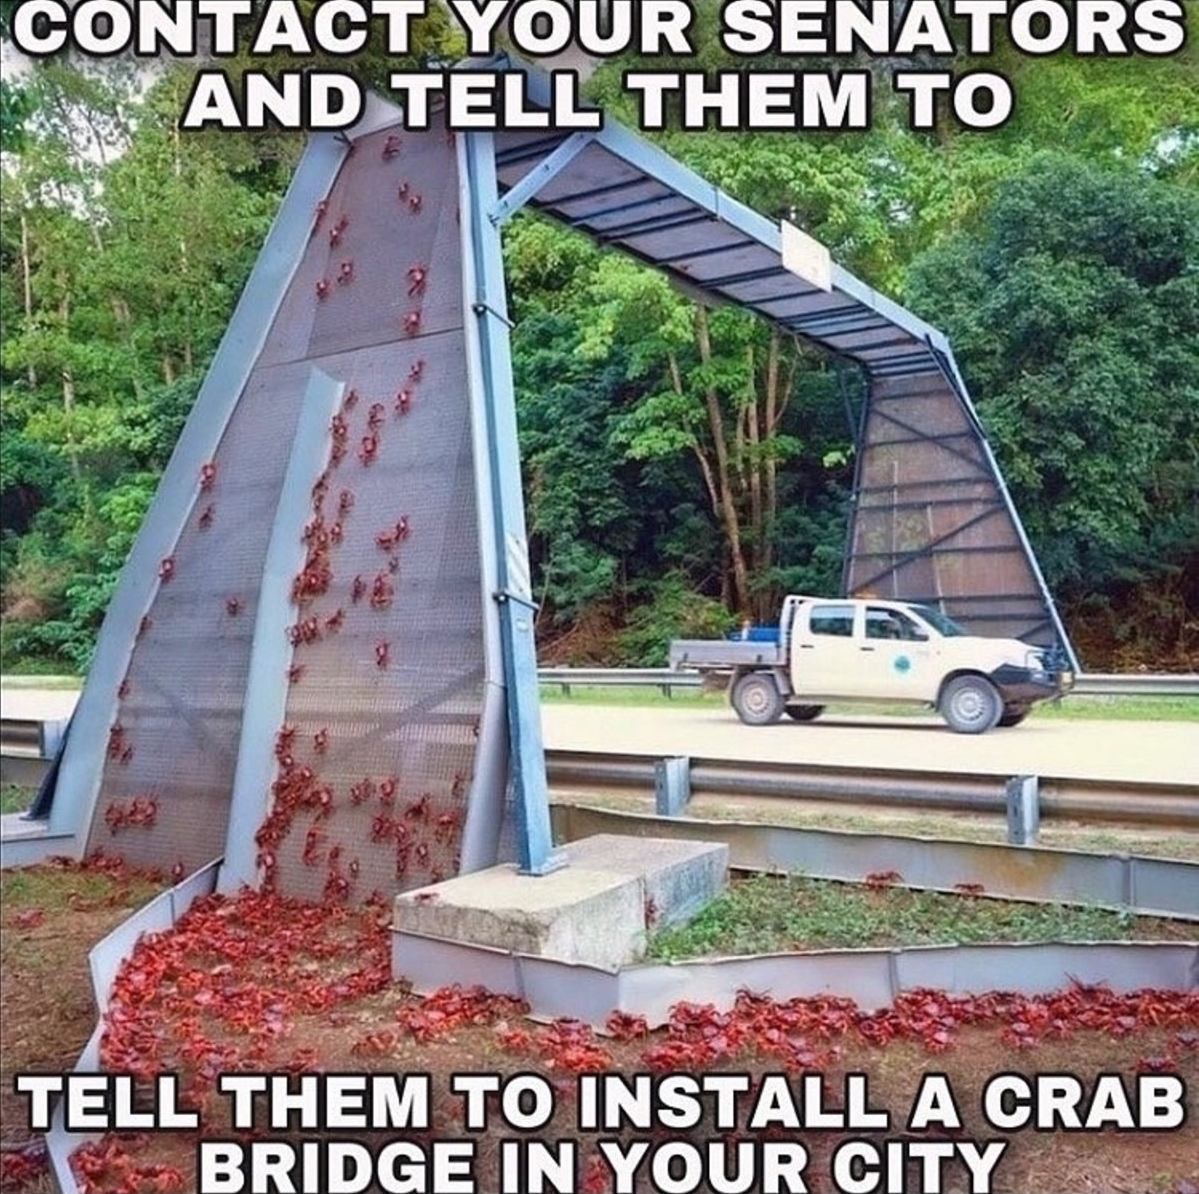 We must complete the crab cycle